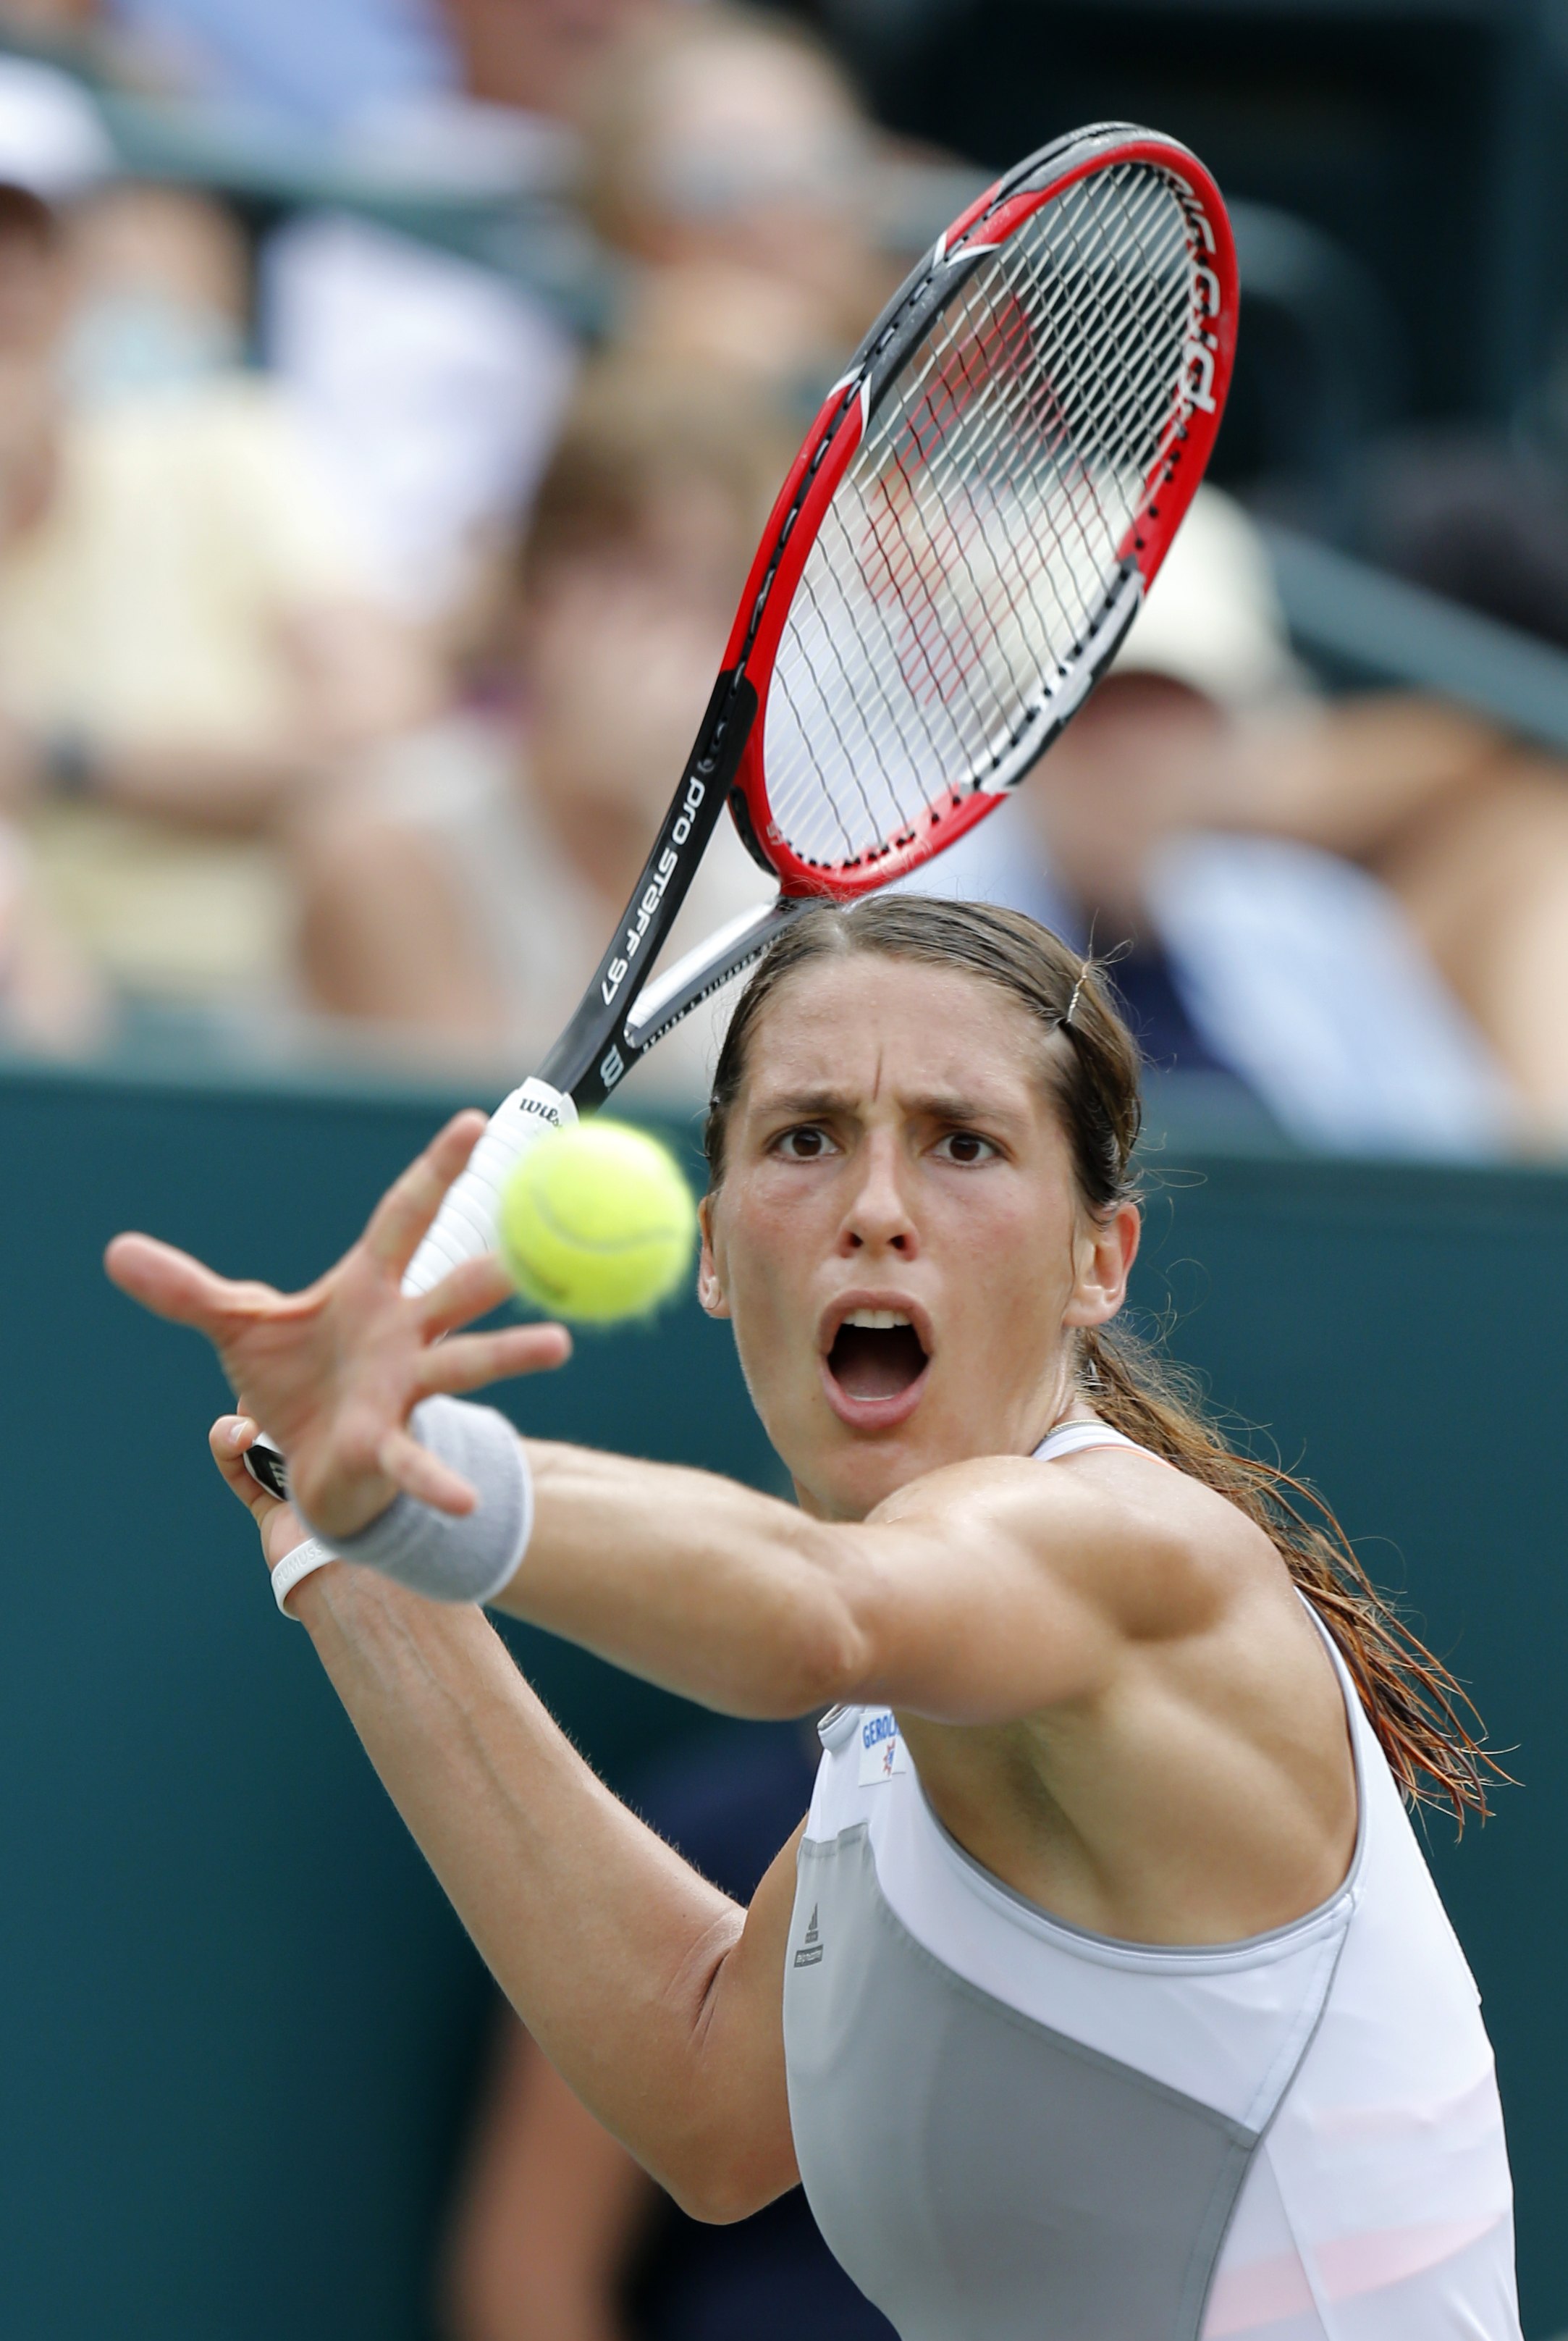 Andrea Petkovic, from Germany, returns to Angelique Kerber during semifinal action at the Family Circle Cup tennis tournament in Charleston, S.C., Saturday, April 11, 2015. Kerber won 6-4, 6-4. (AP Photo/Mic Smith)